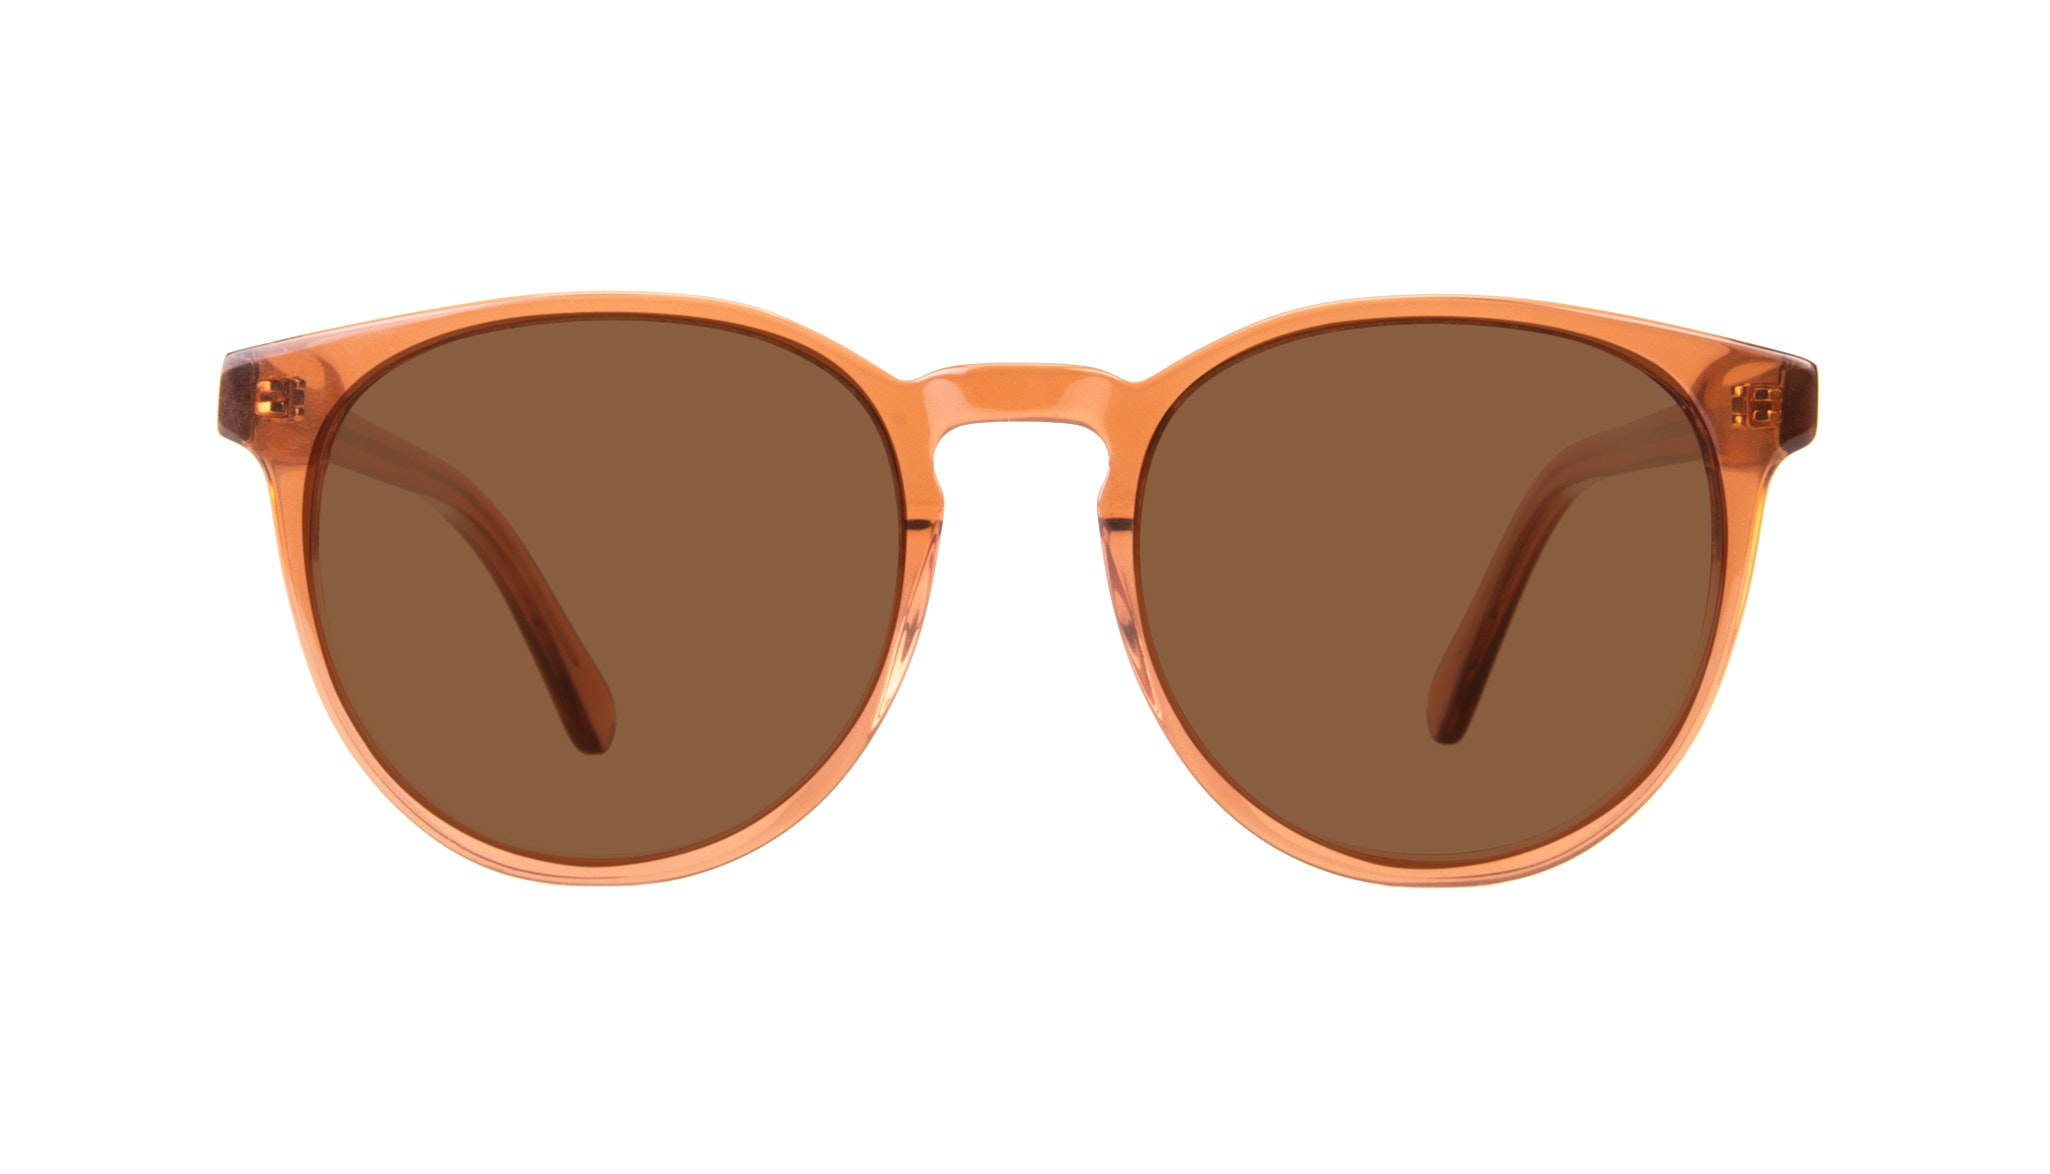 Affordable Fashion Glasses Round Sunglasses Women Brilliant Umber Front